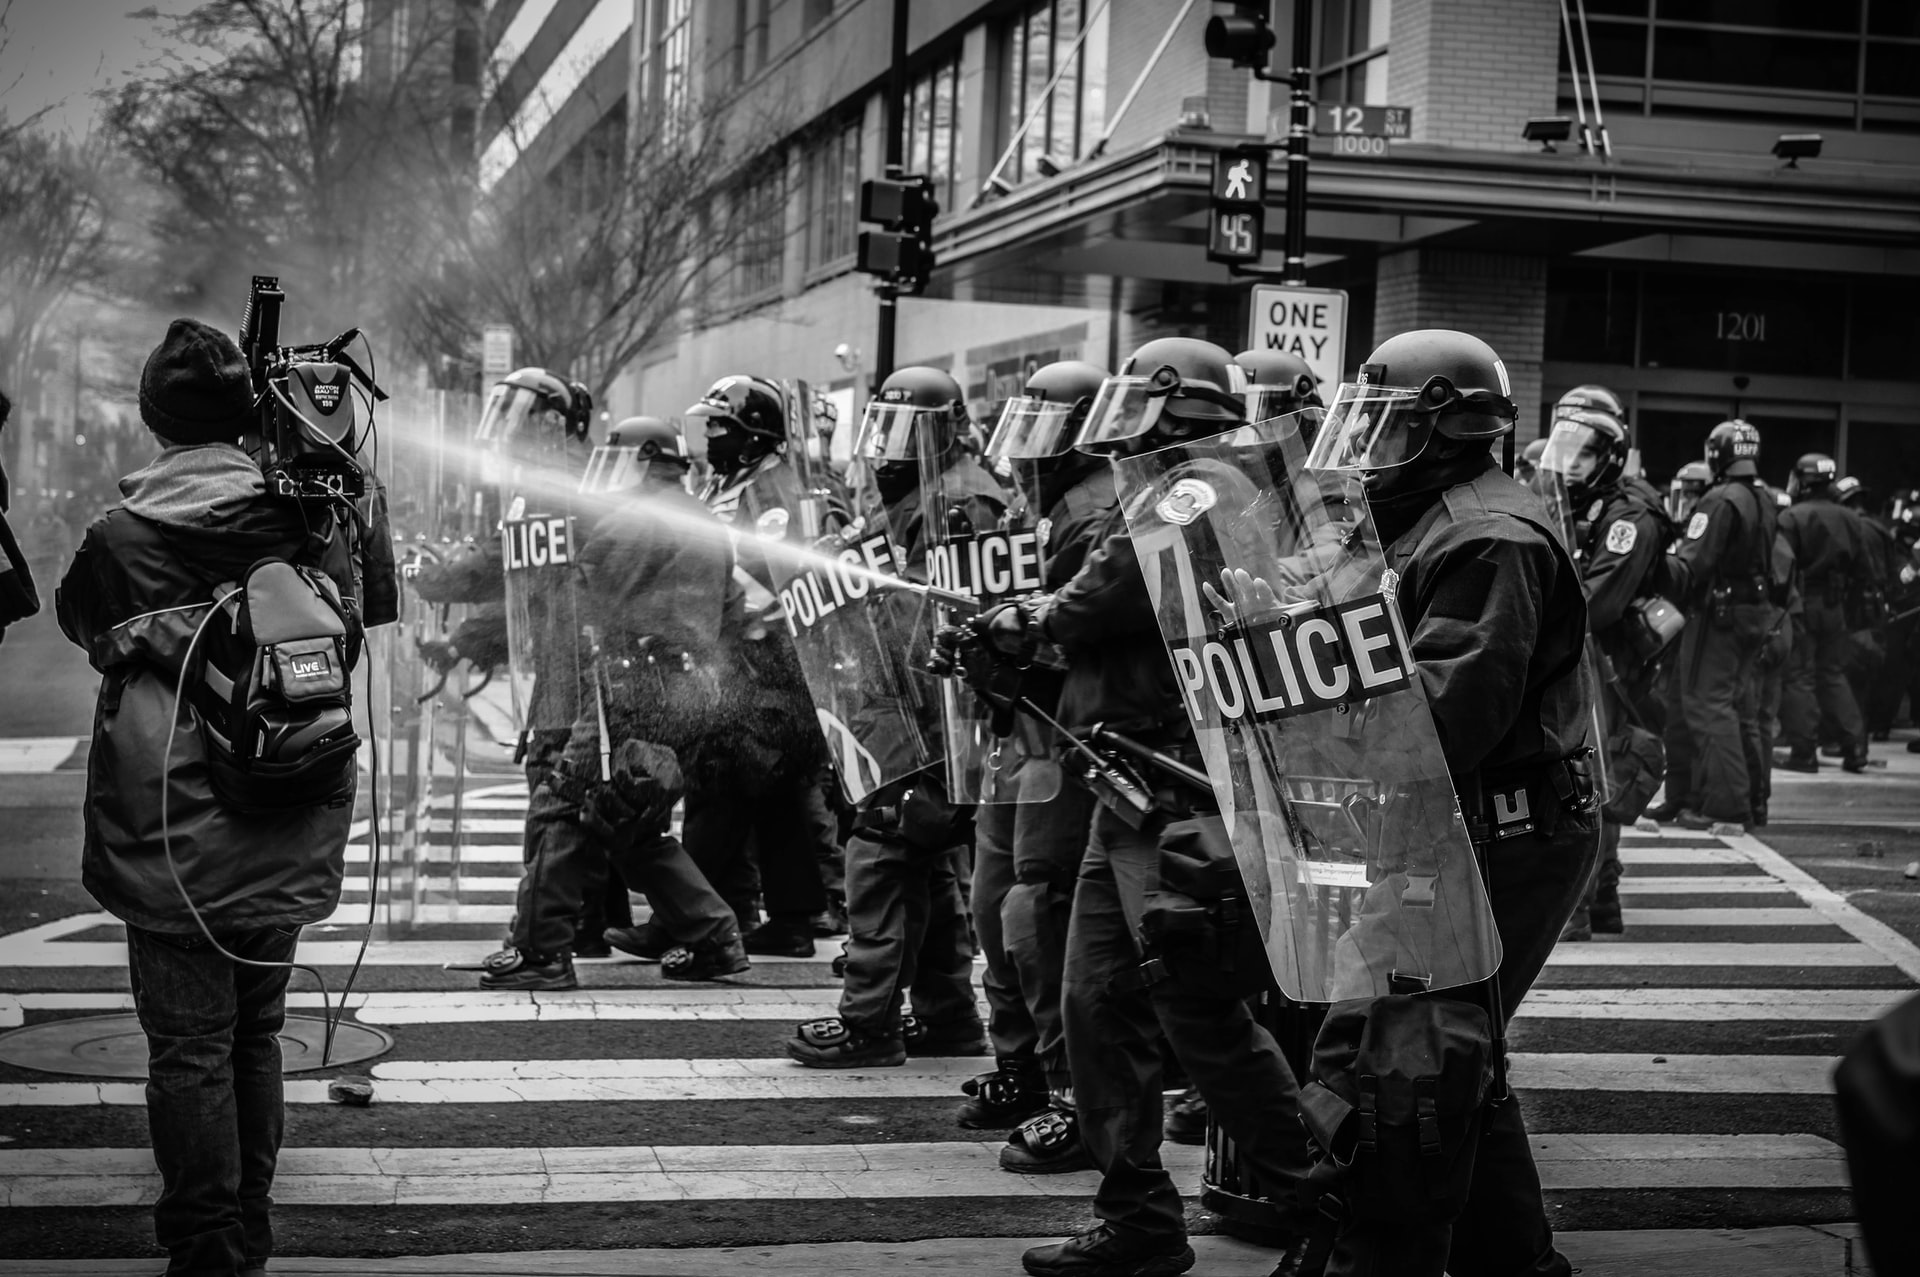 BLM Protest police brutality